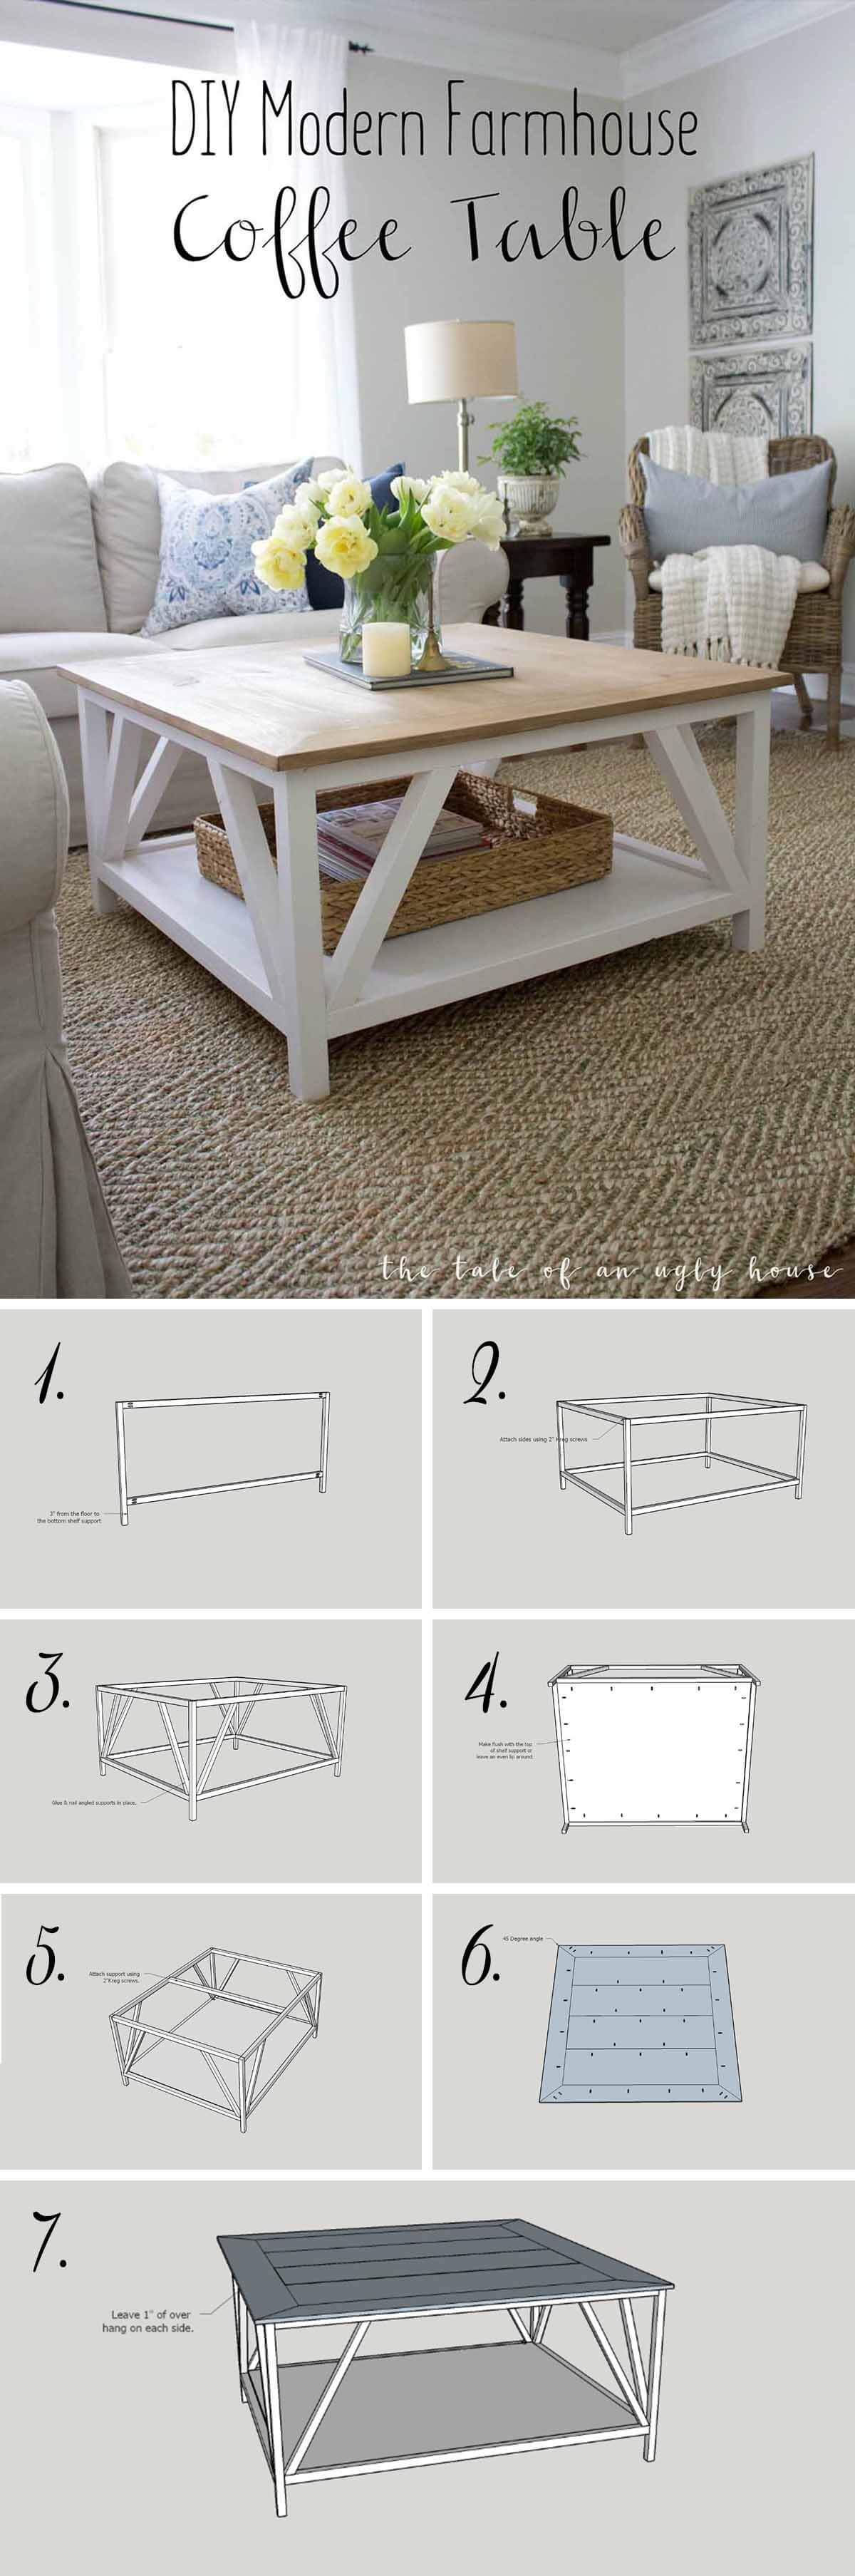 best diy farmhouse coffee table ideas and designs for homebnc white accent pretty cottage inspired bright look black marble dining grey wood end tables pier wall decor clearance